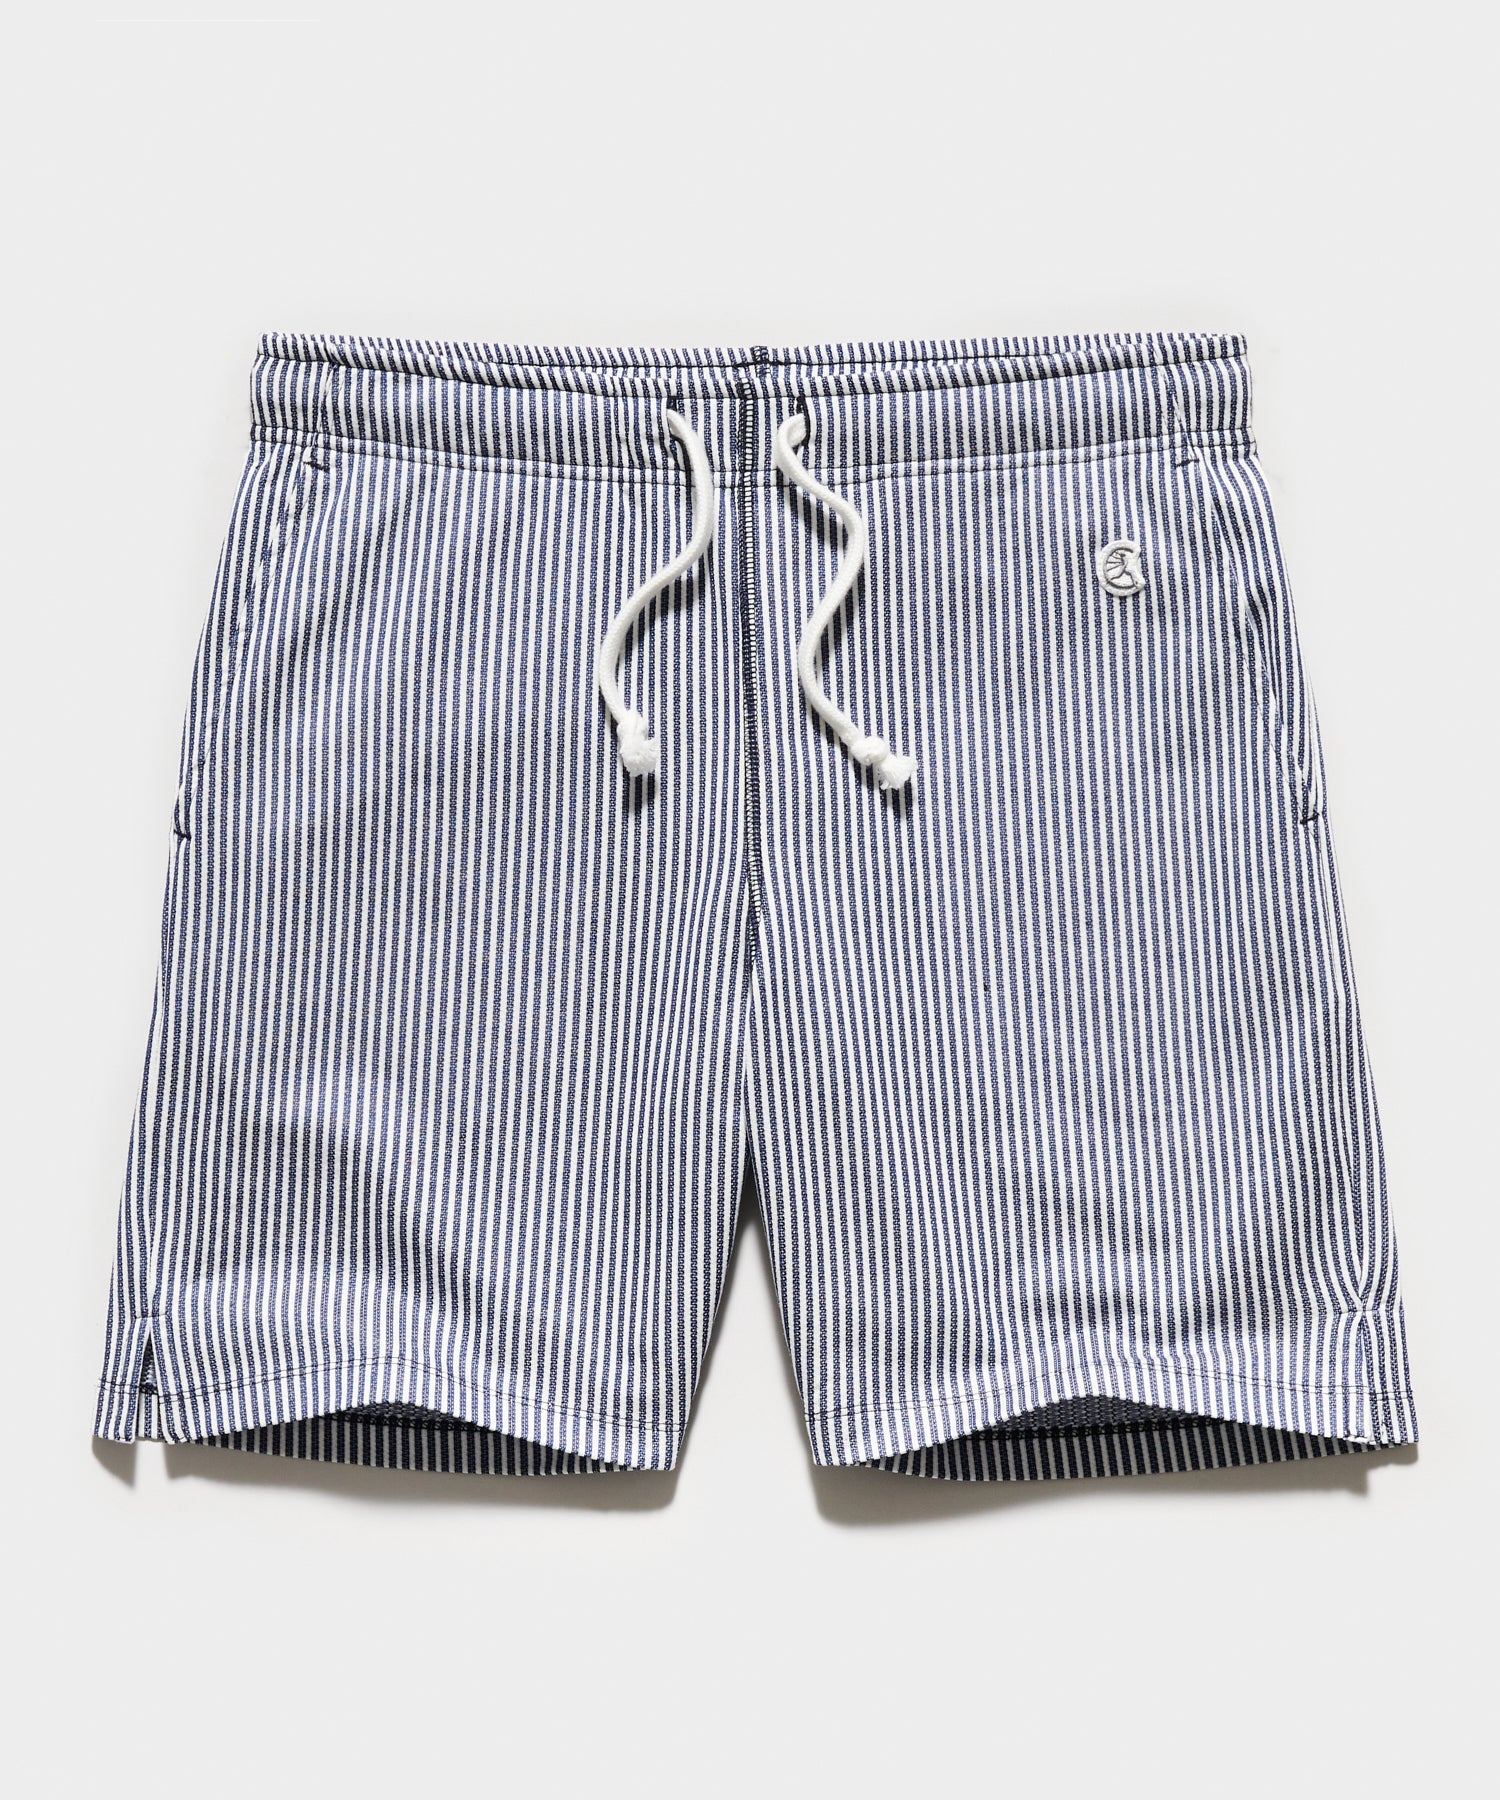 Seersucker Warm Up Short in Navy